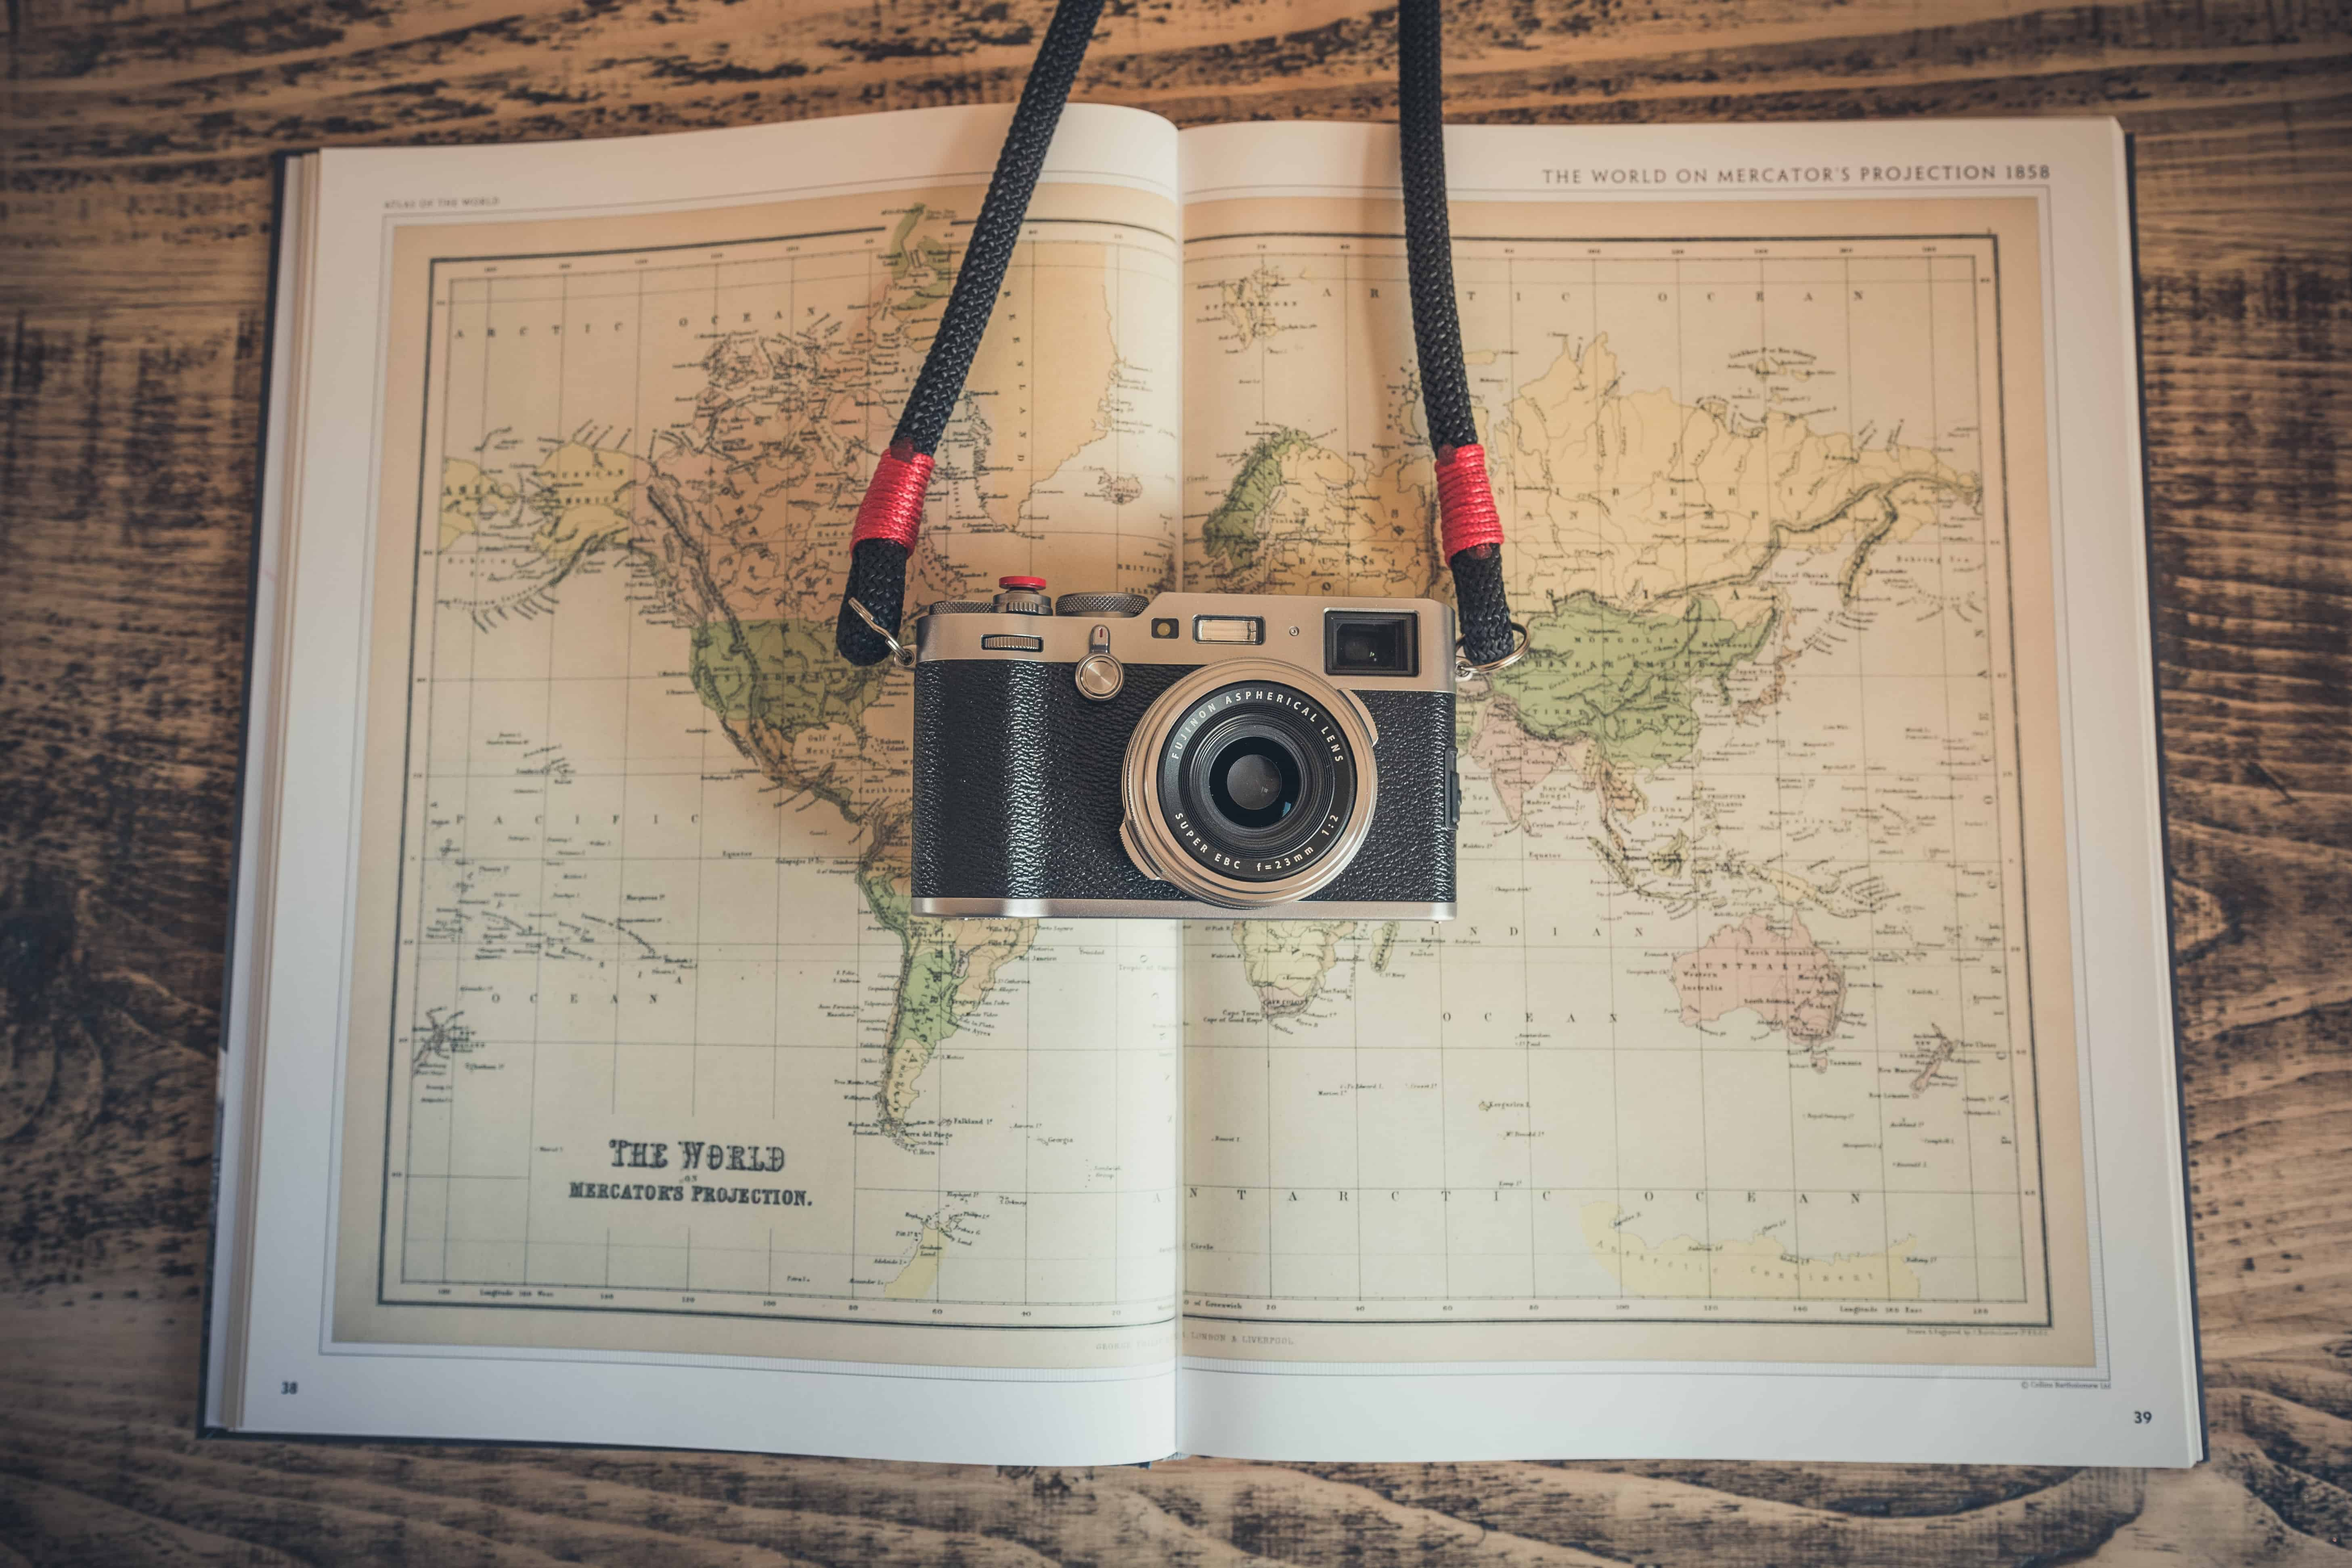 camera on top of a world map book